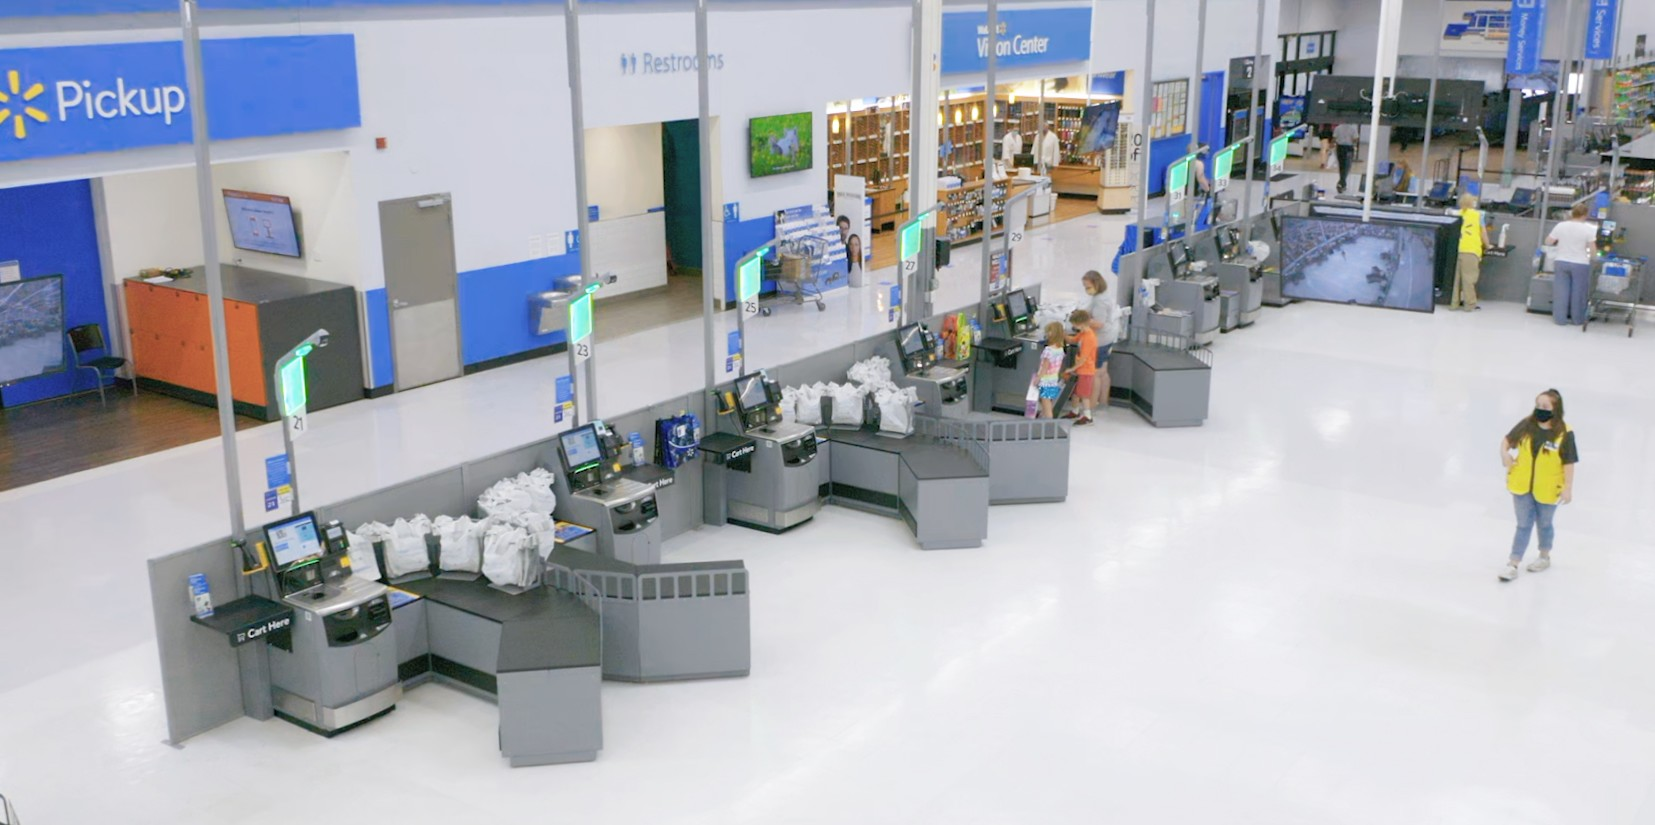 New Checkout Experience Seeks To Eliminate The Wait And Add Options At The Register